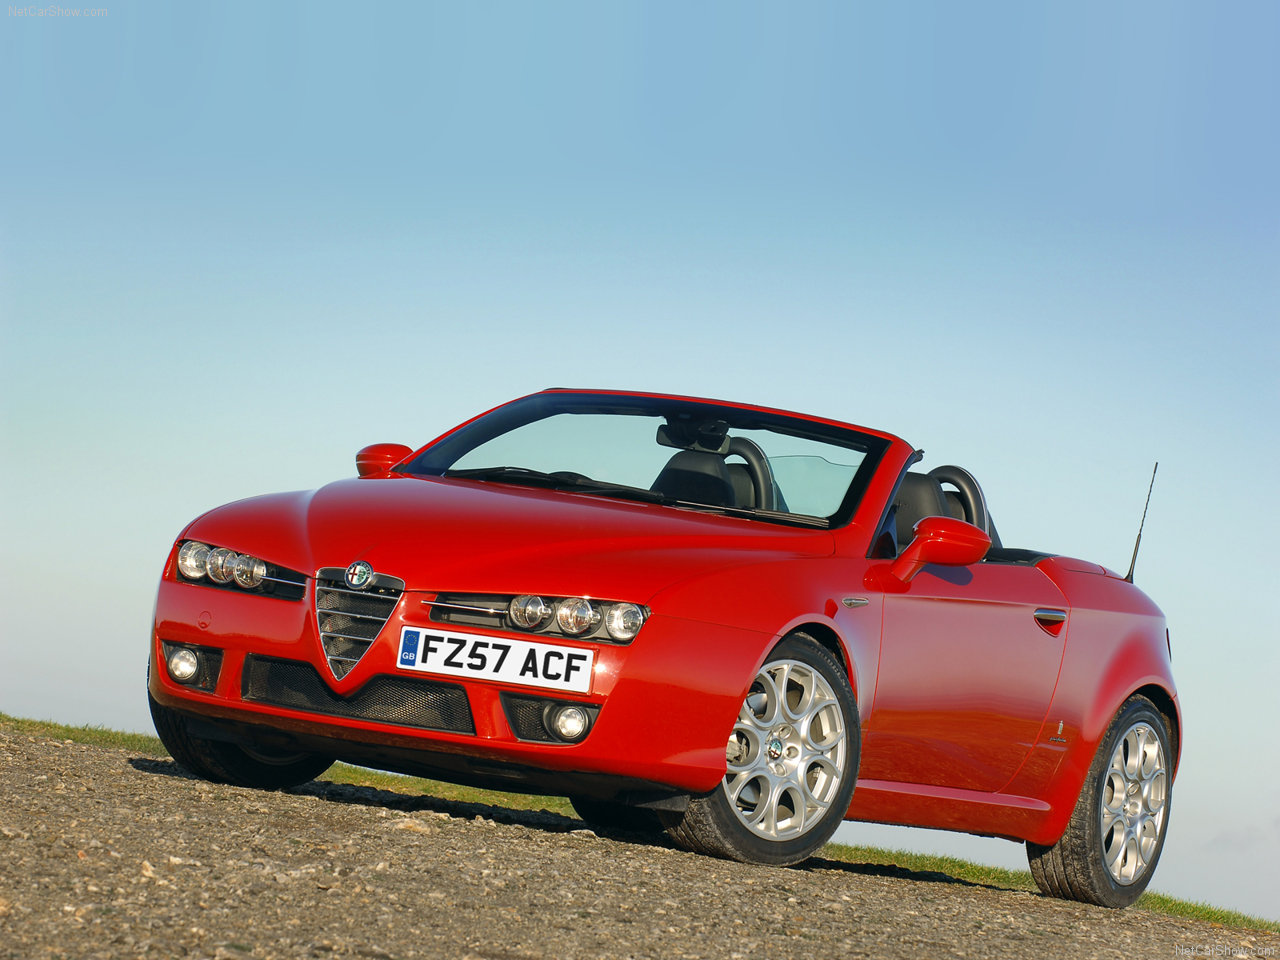 2006 Alfa Romeo Spider UK Version photo - 3